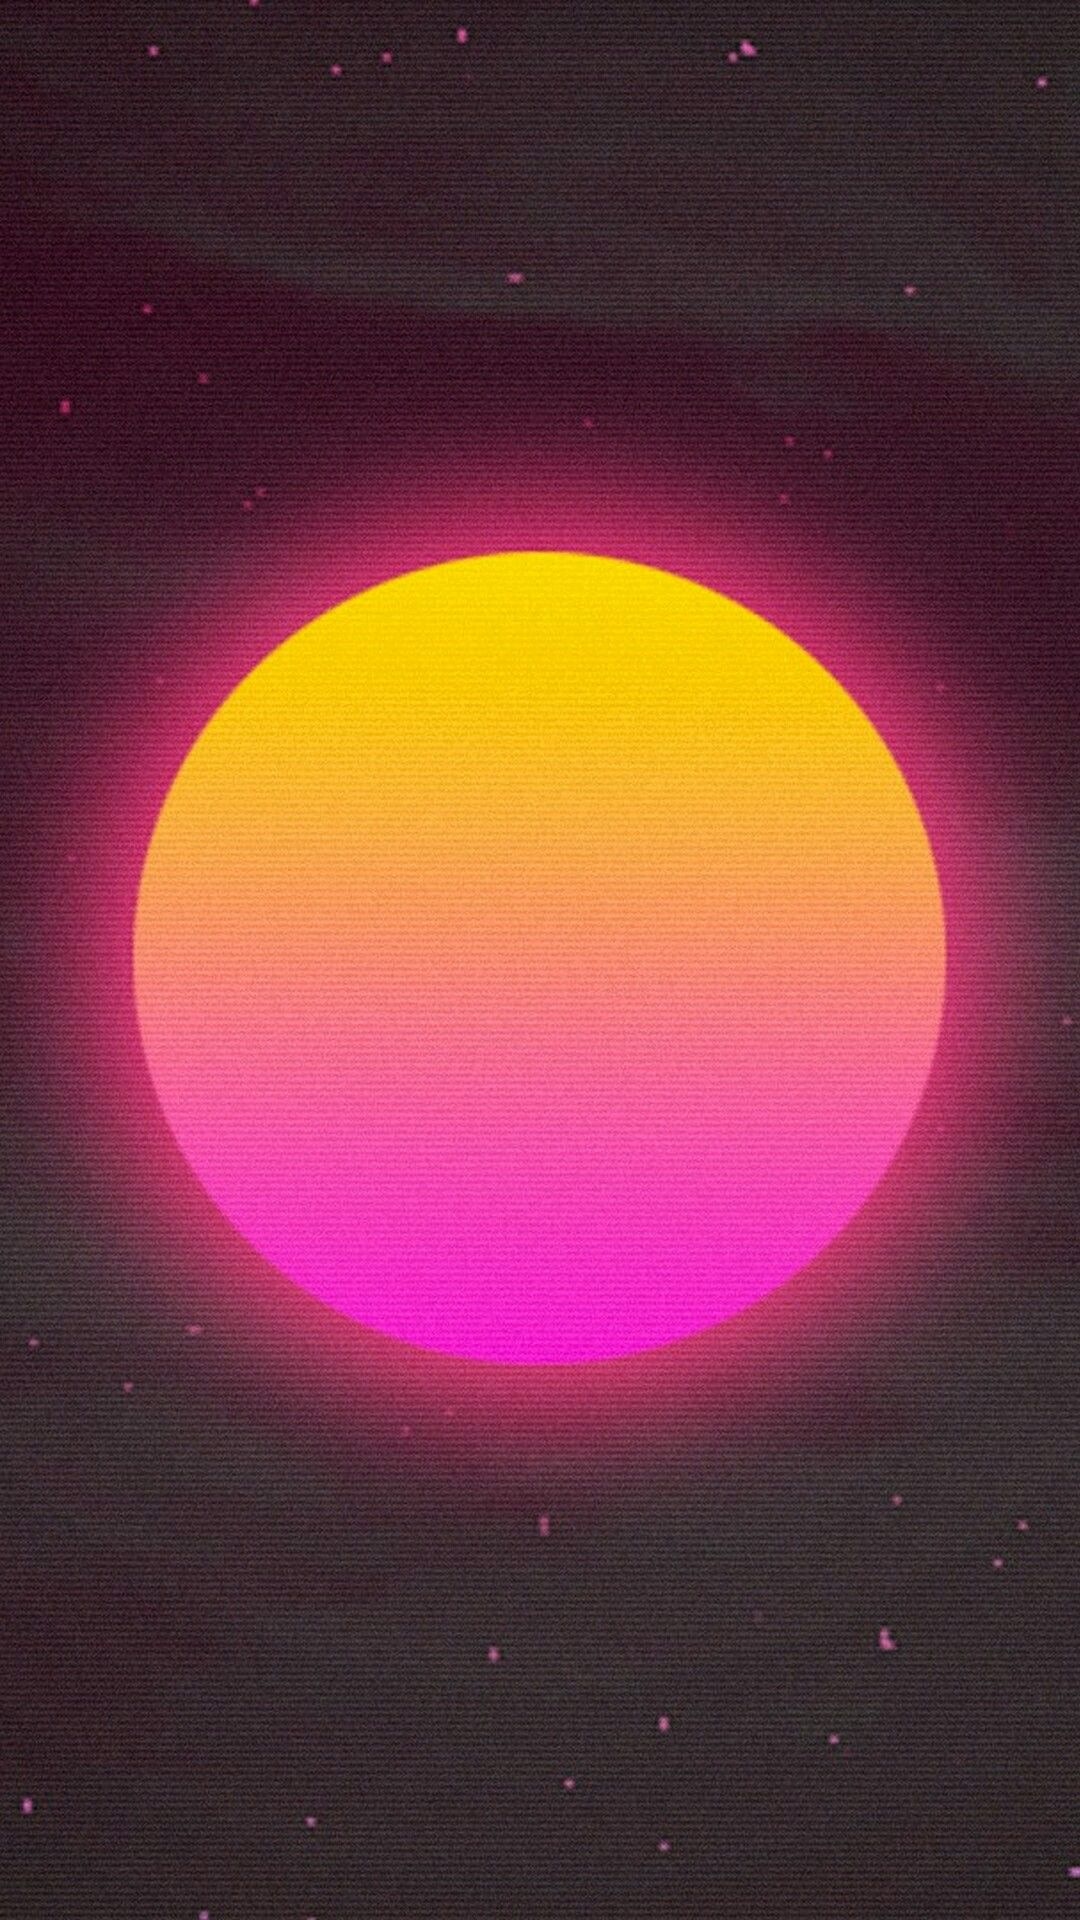 Pin by Thomas Anderson on aesthetics vaporwave 80s vision 1080x1920